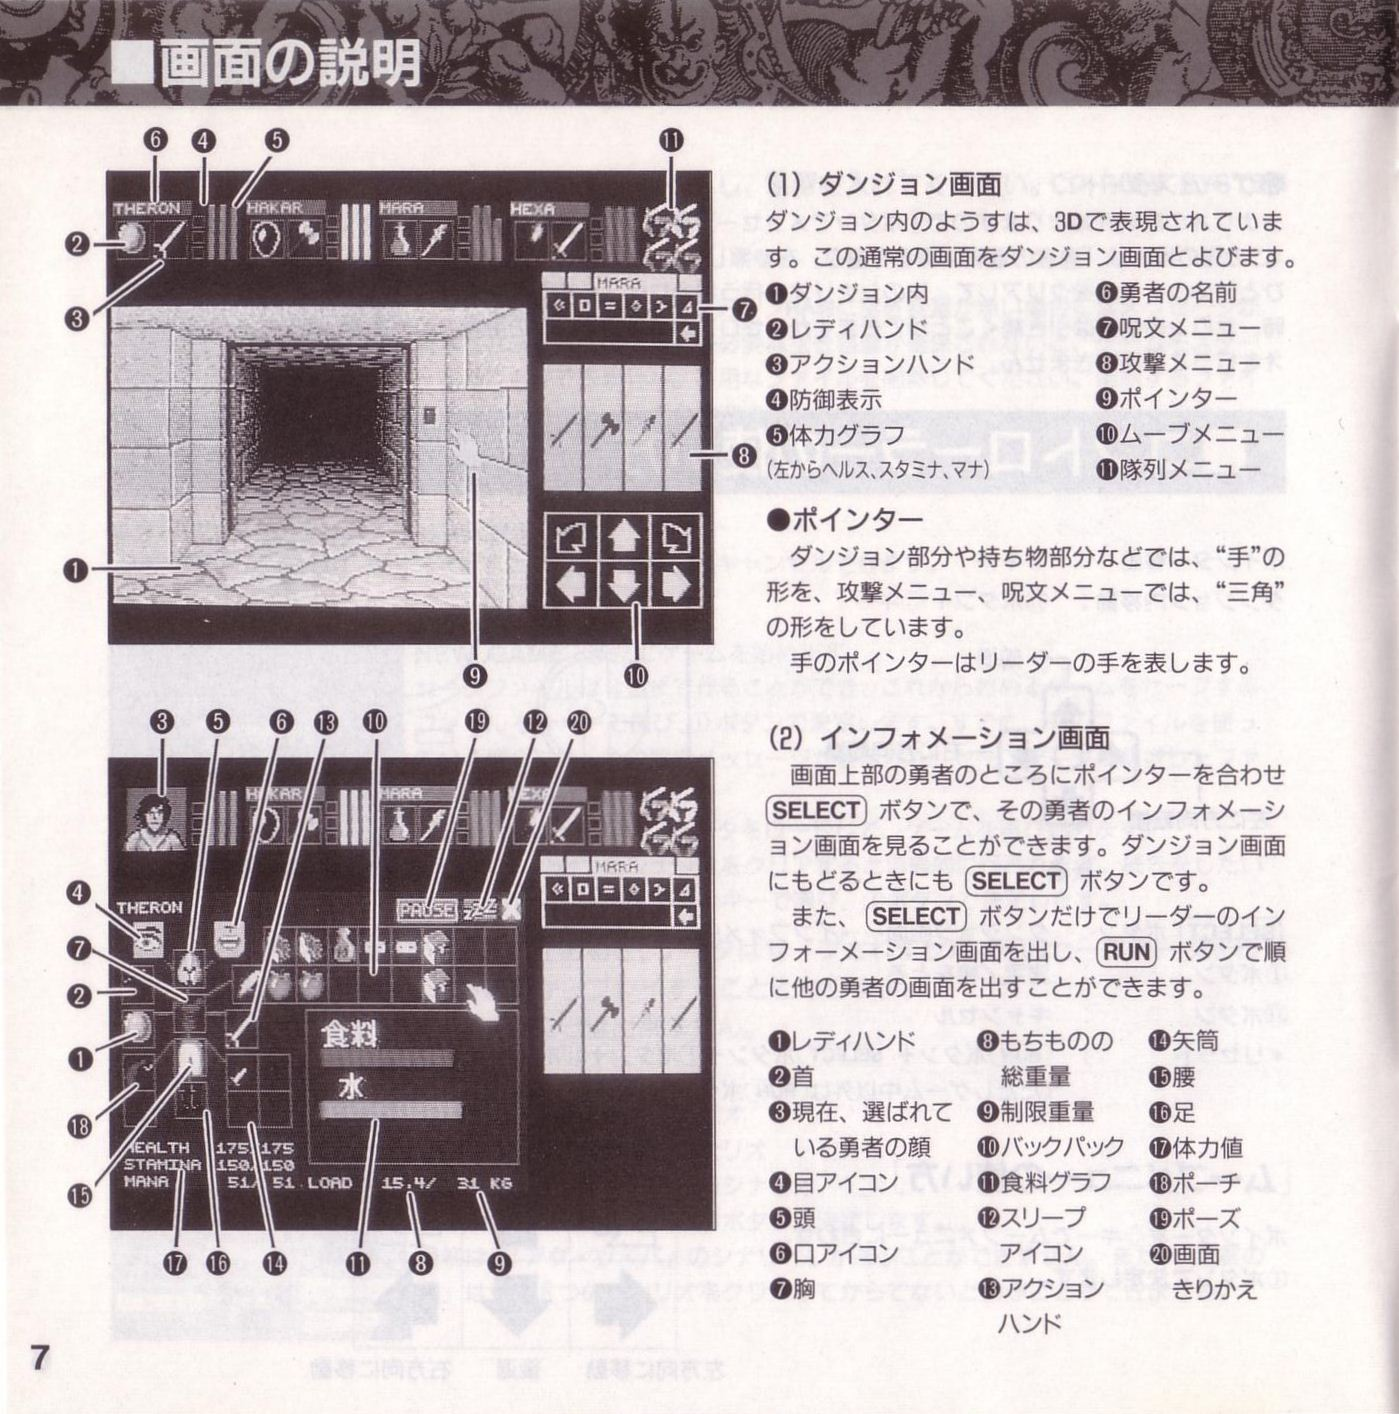 Game - Theron's Quest - JP - PC Engine - Booklet - Page 010 - Scan